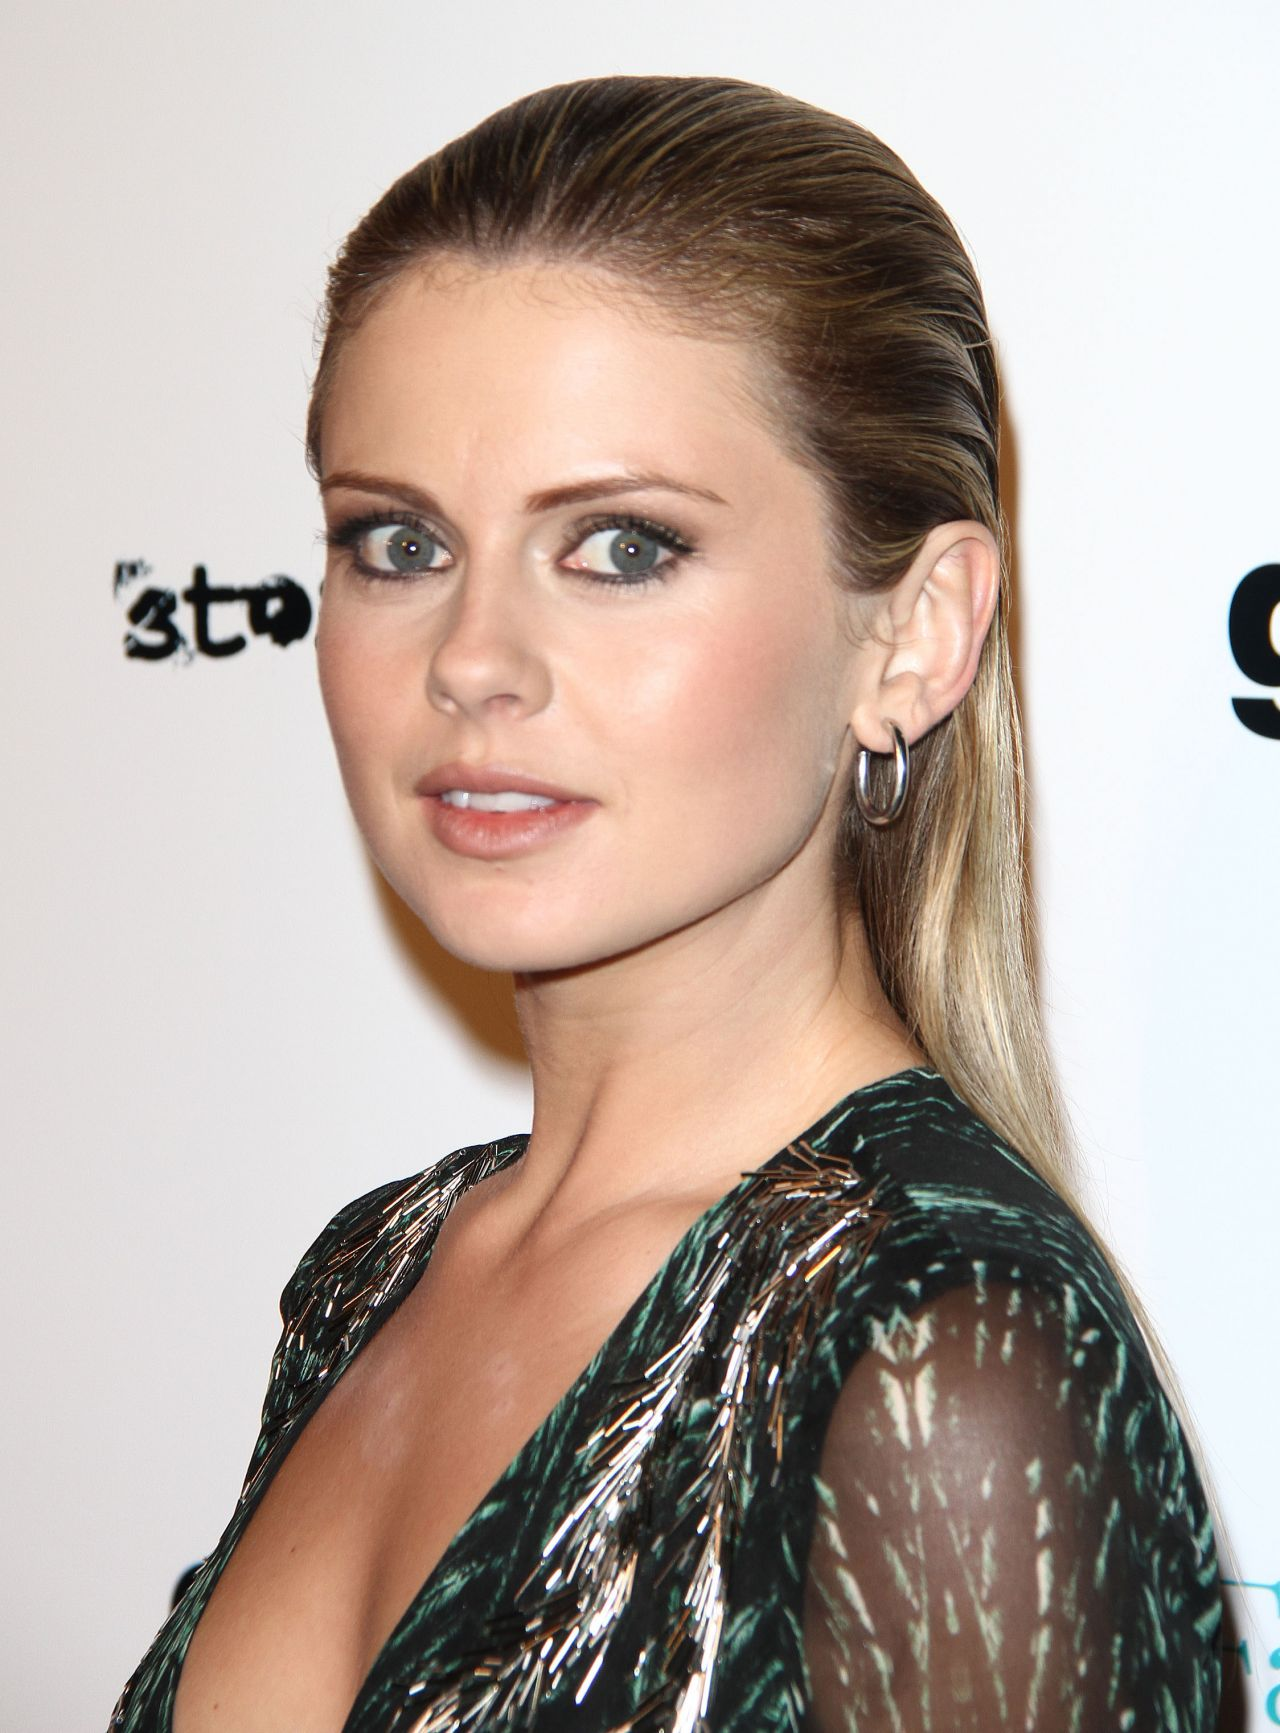 BRIGHTEST STAR Premiere in Los Angeles - Rose McIver